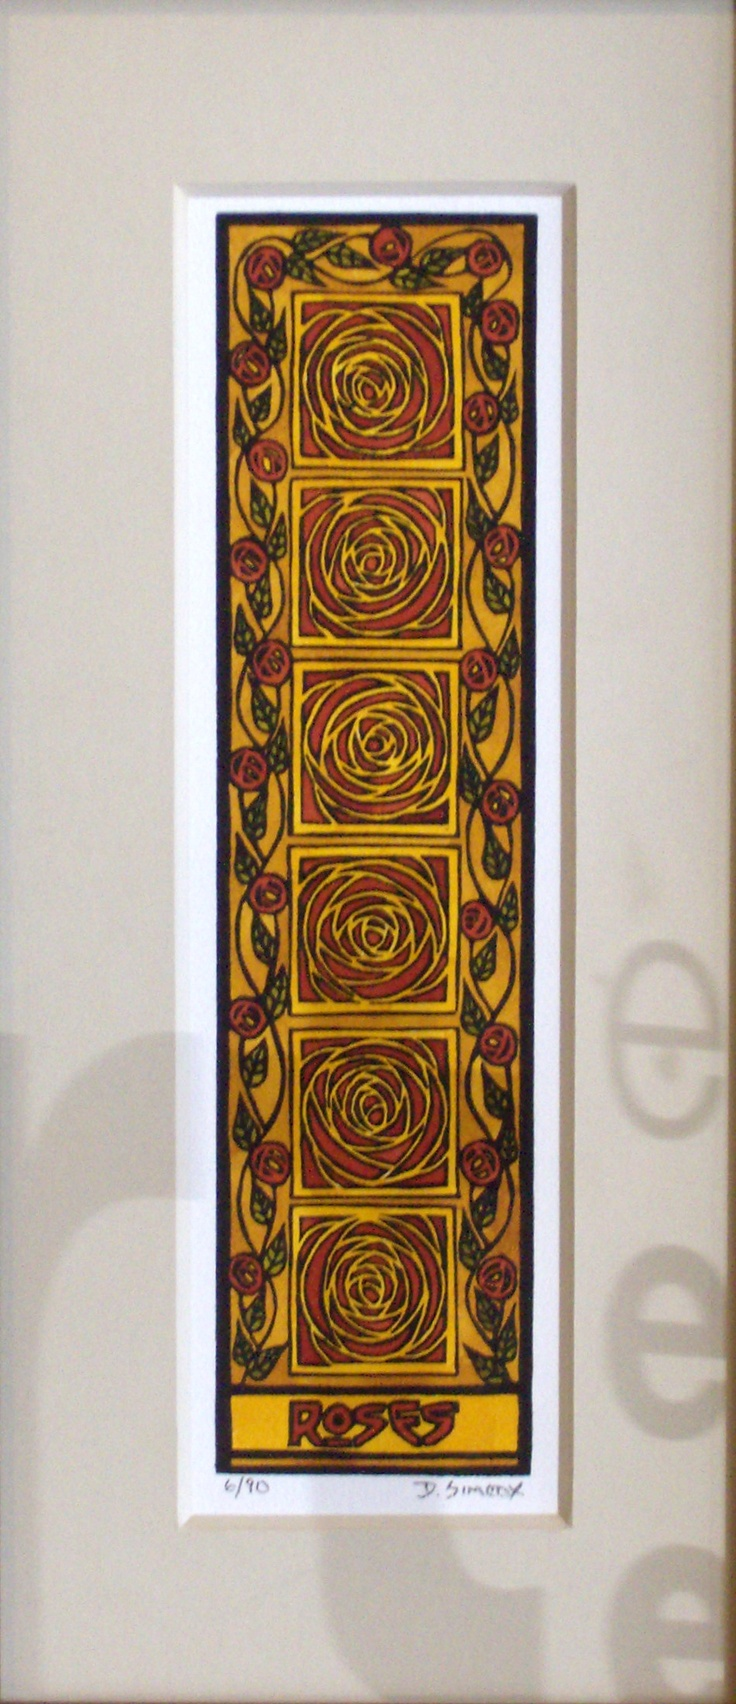 Arts and crafts prints - Vertical Roses Print In The Arts And Crafts Era Style Linoleum Block Print Print